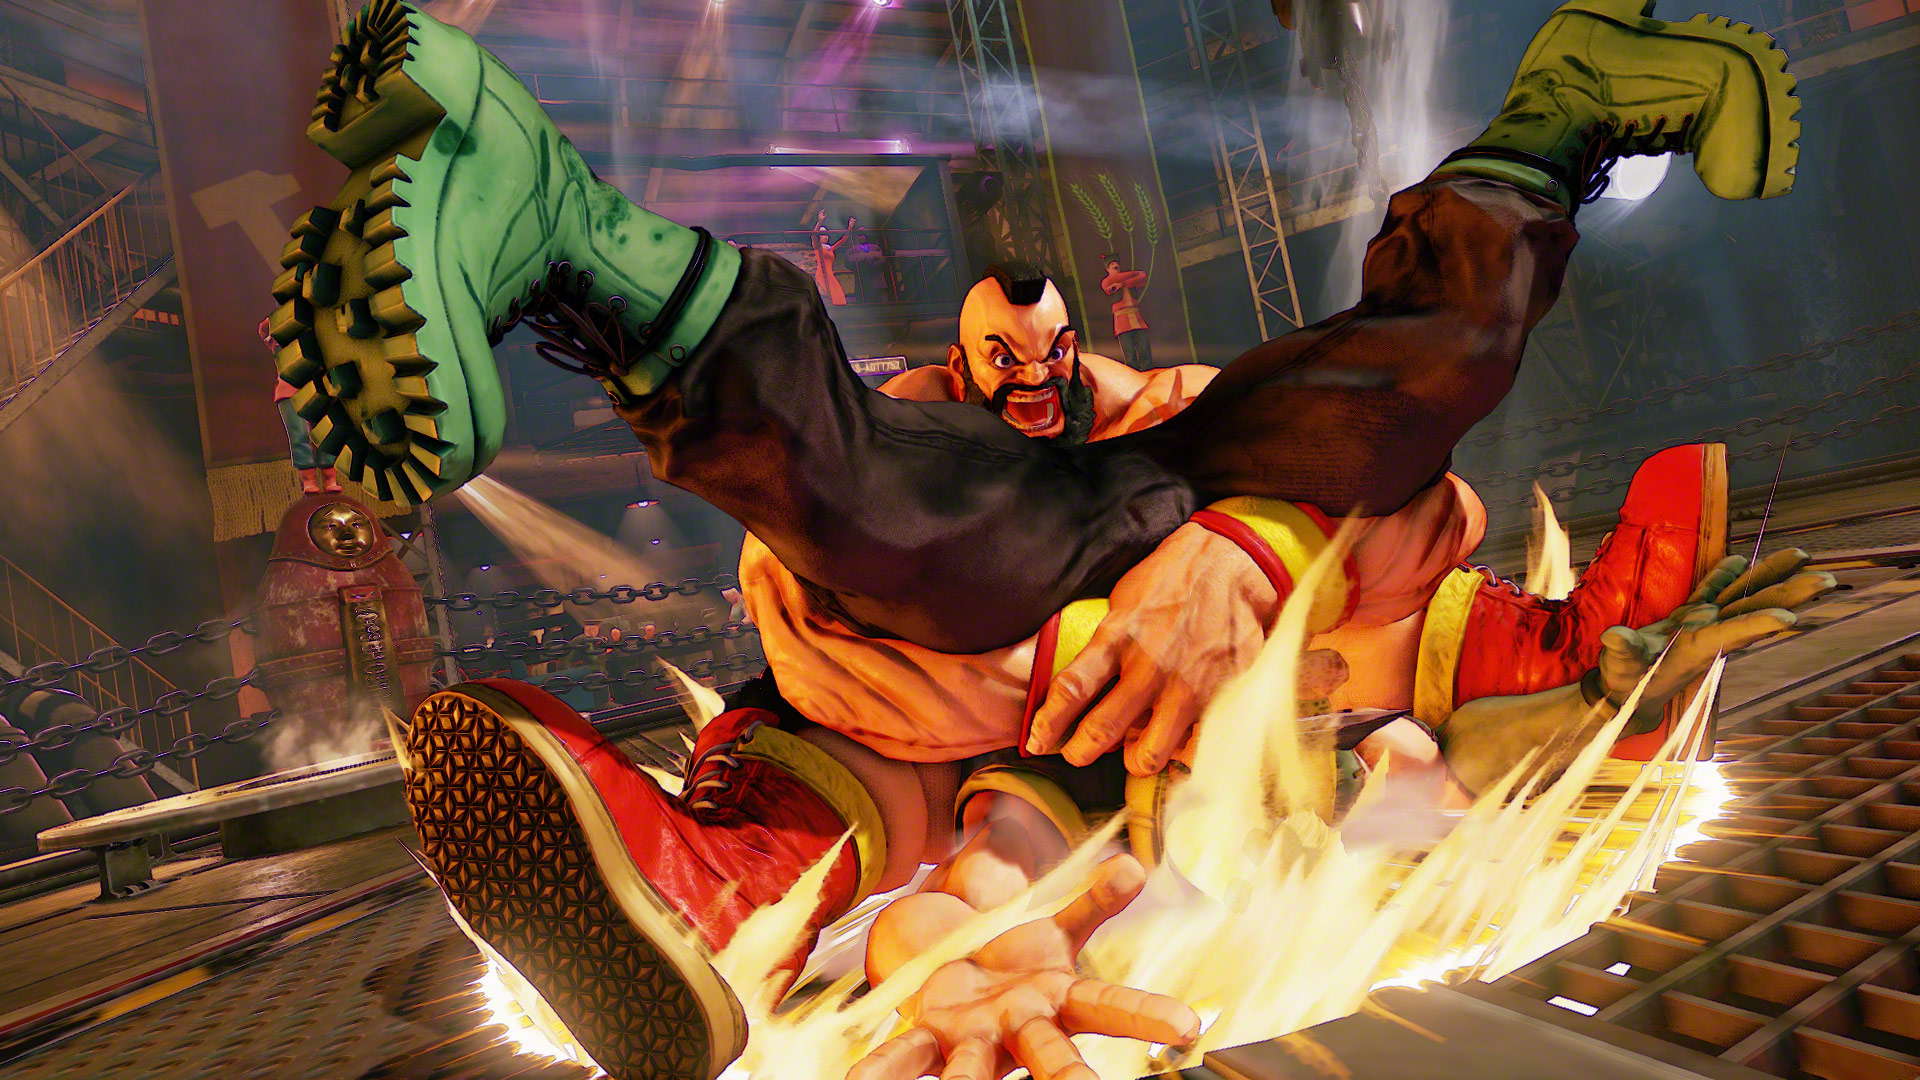 Zangief returns in Street Fighter 5 1 out of 18 image gallery